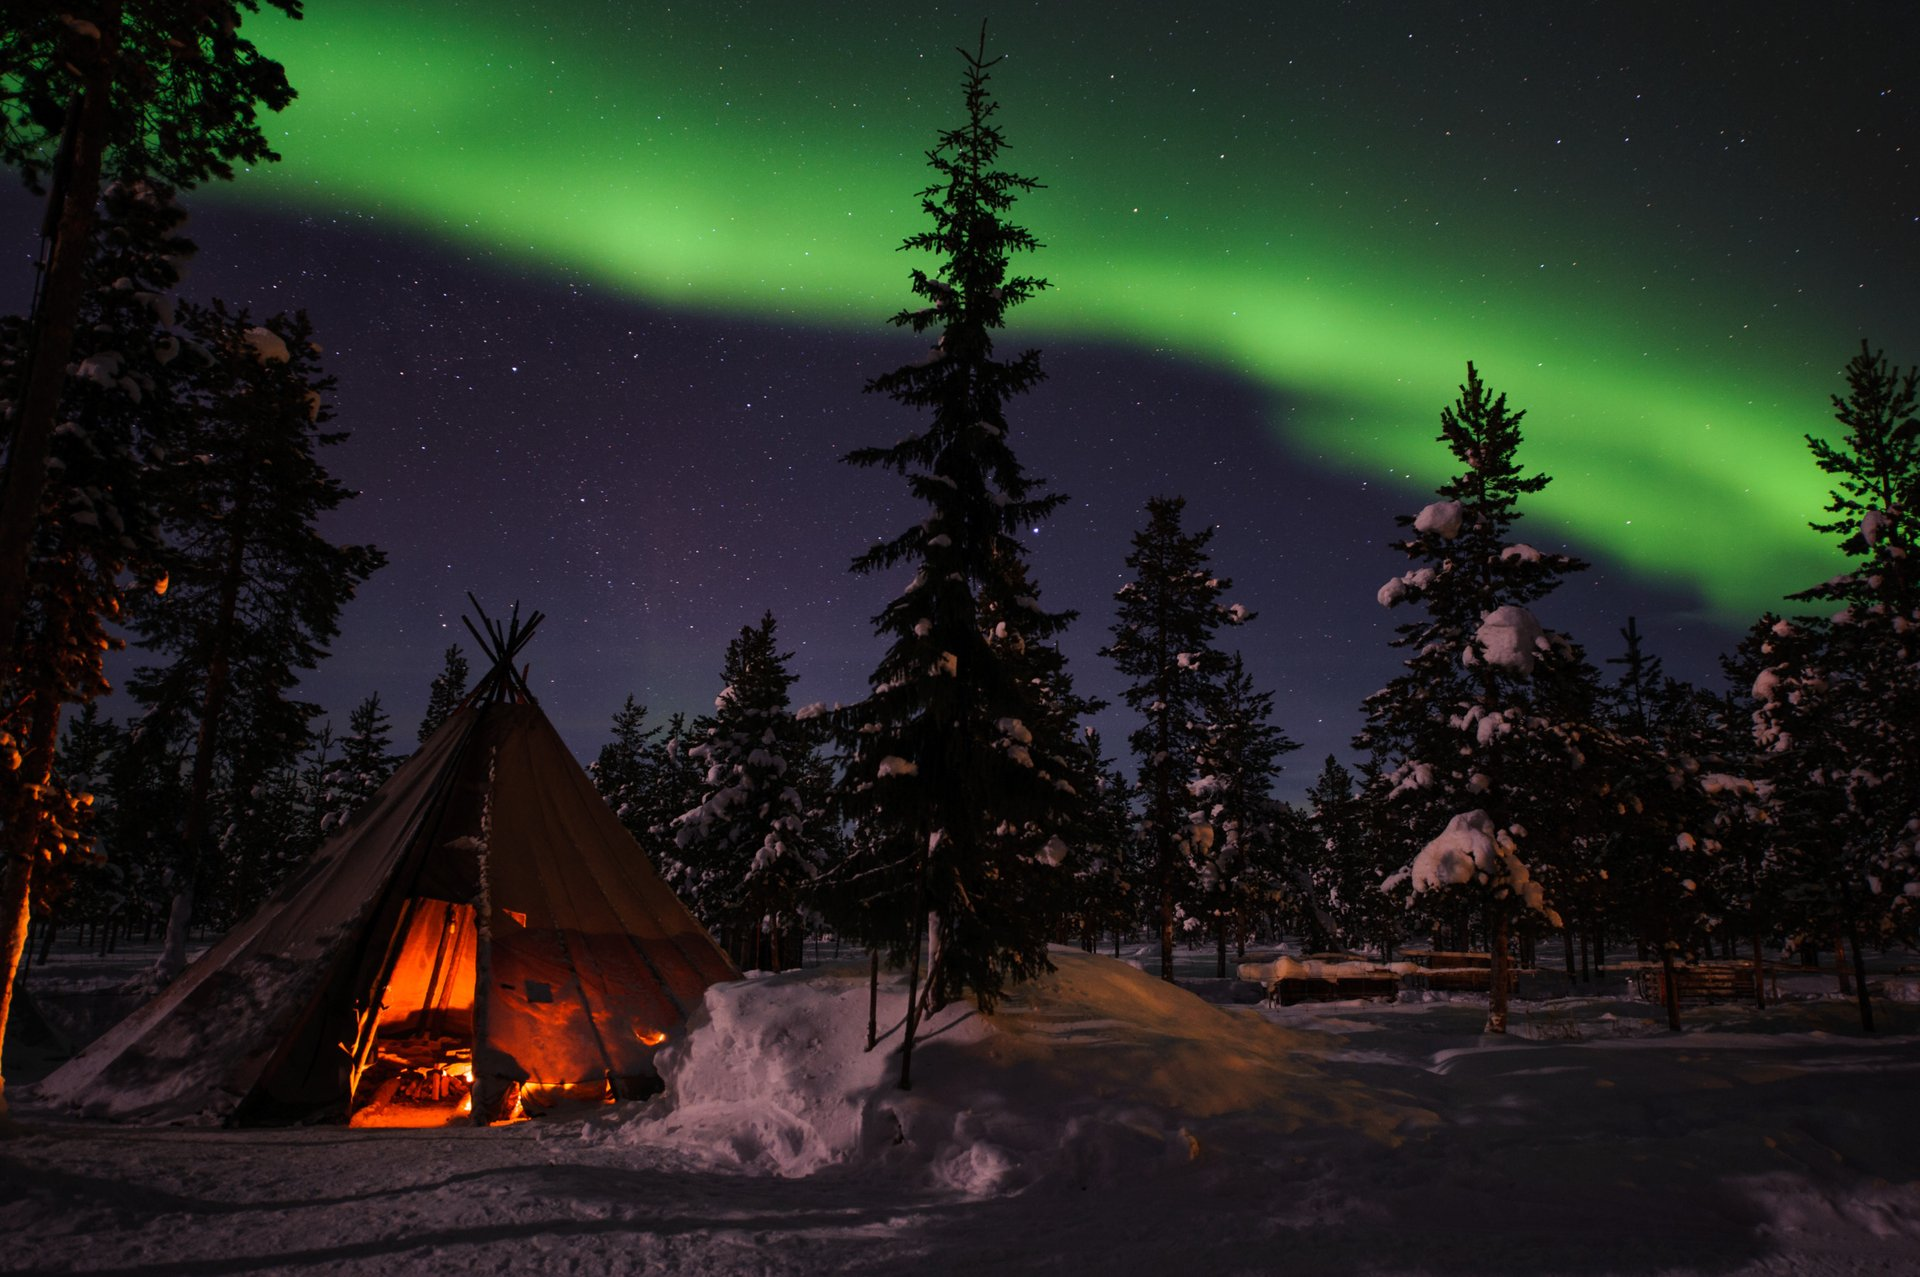 Northern Lights in Sweden 2020 - Best Time